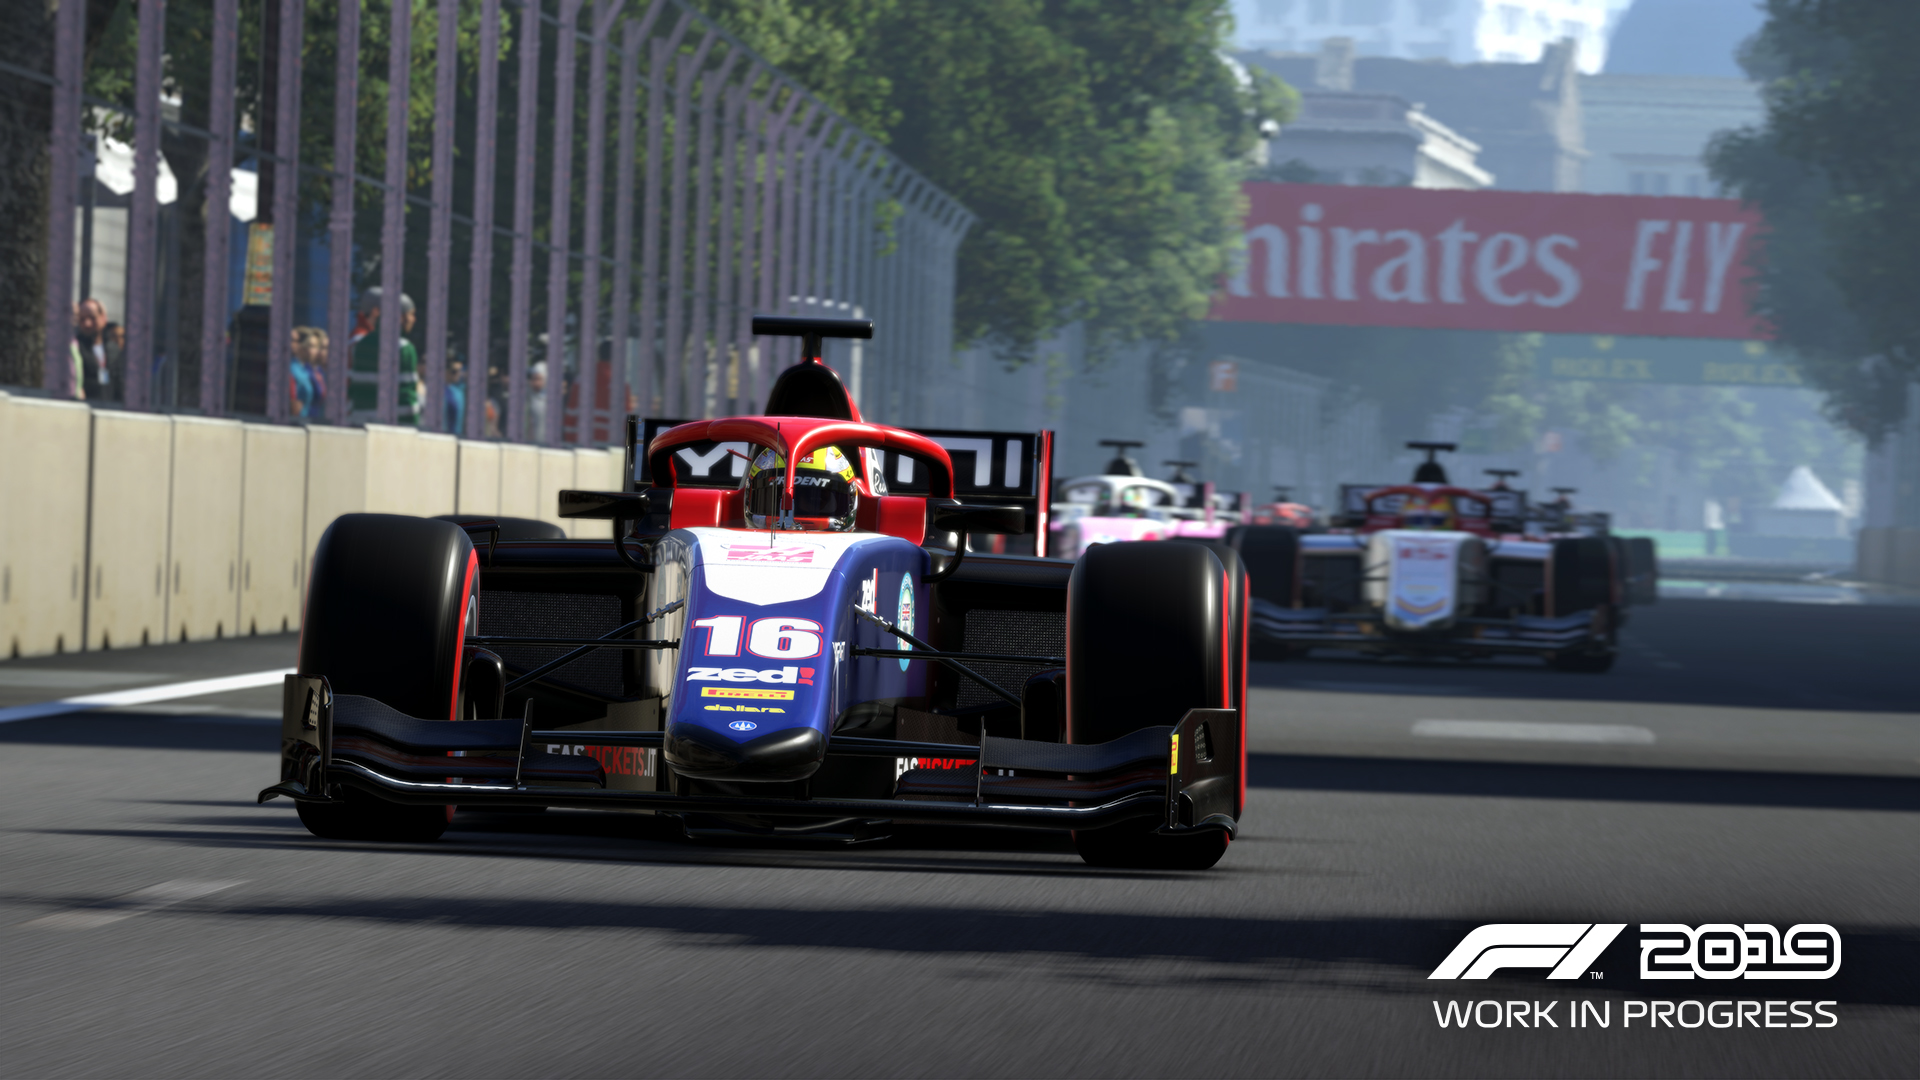 F1 2019 will reignite the rivalry between Prost and Senna